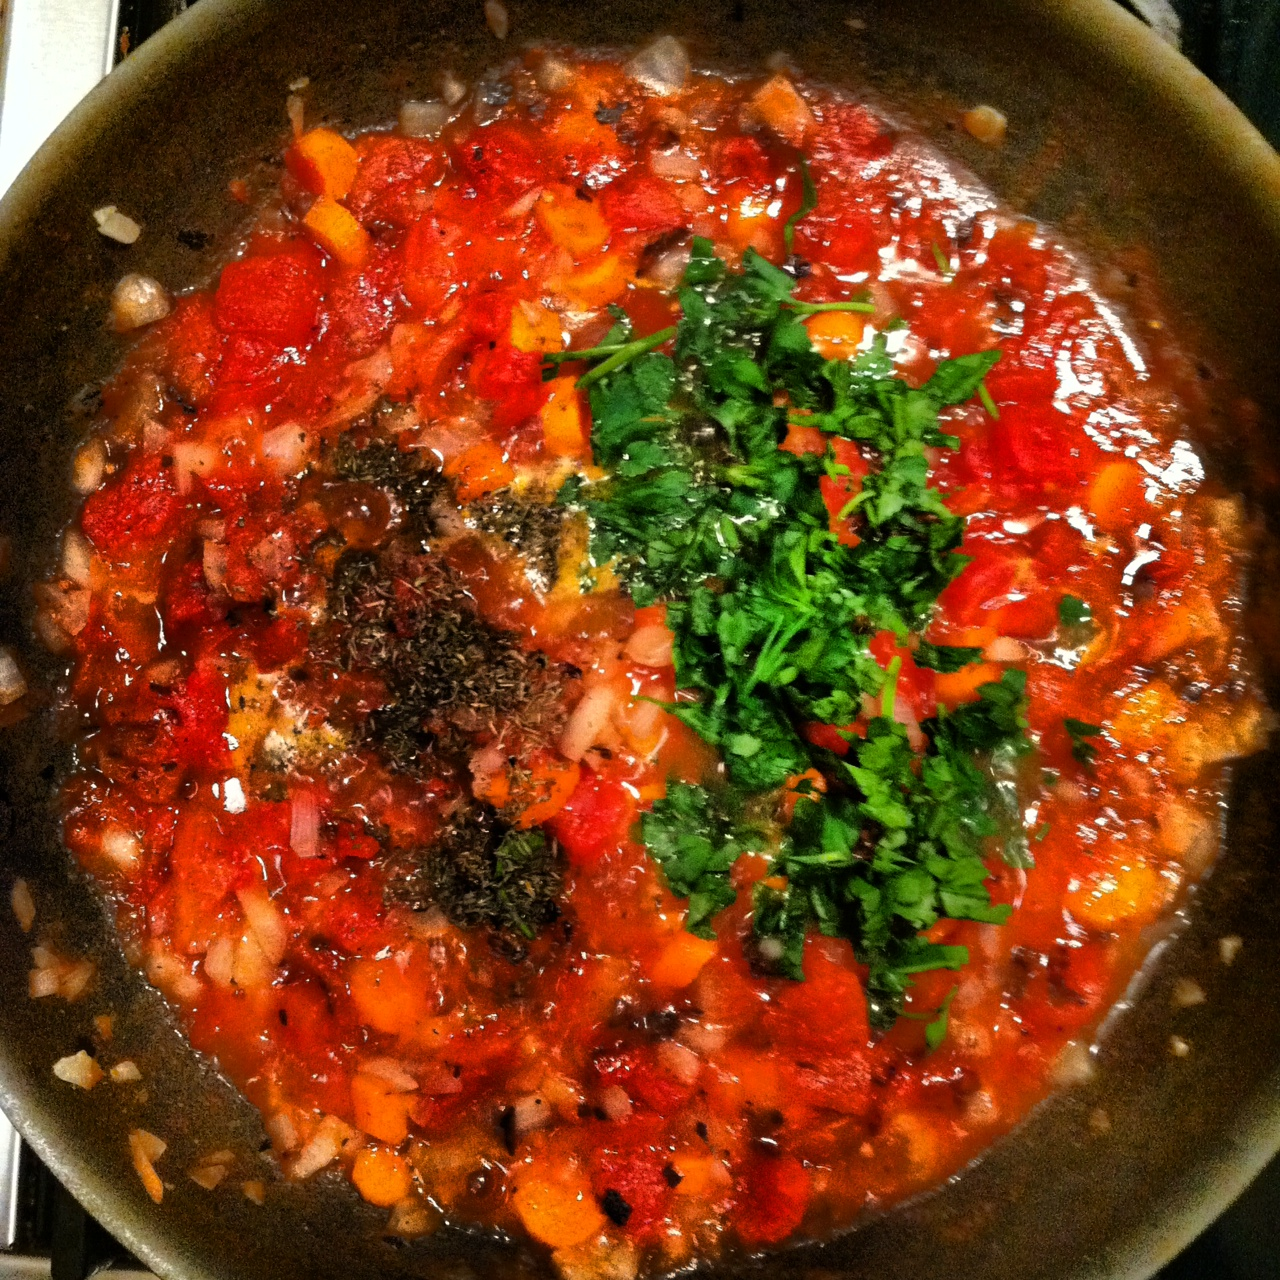 Making the Tomato, Onion, Carrot, Parsley & Time Mixture